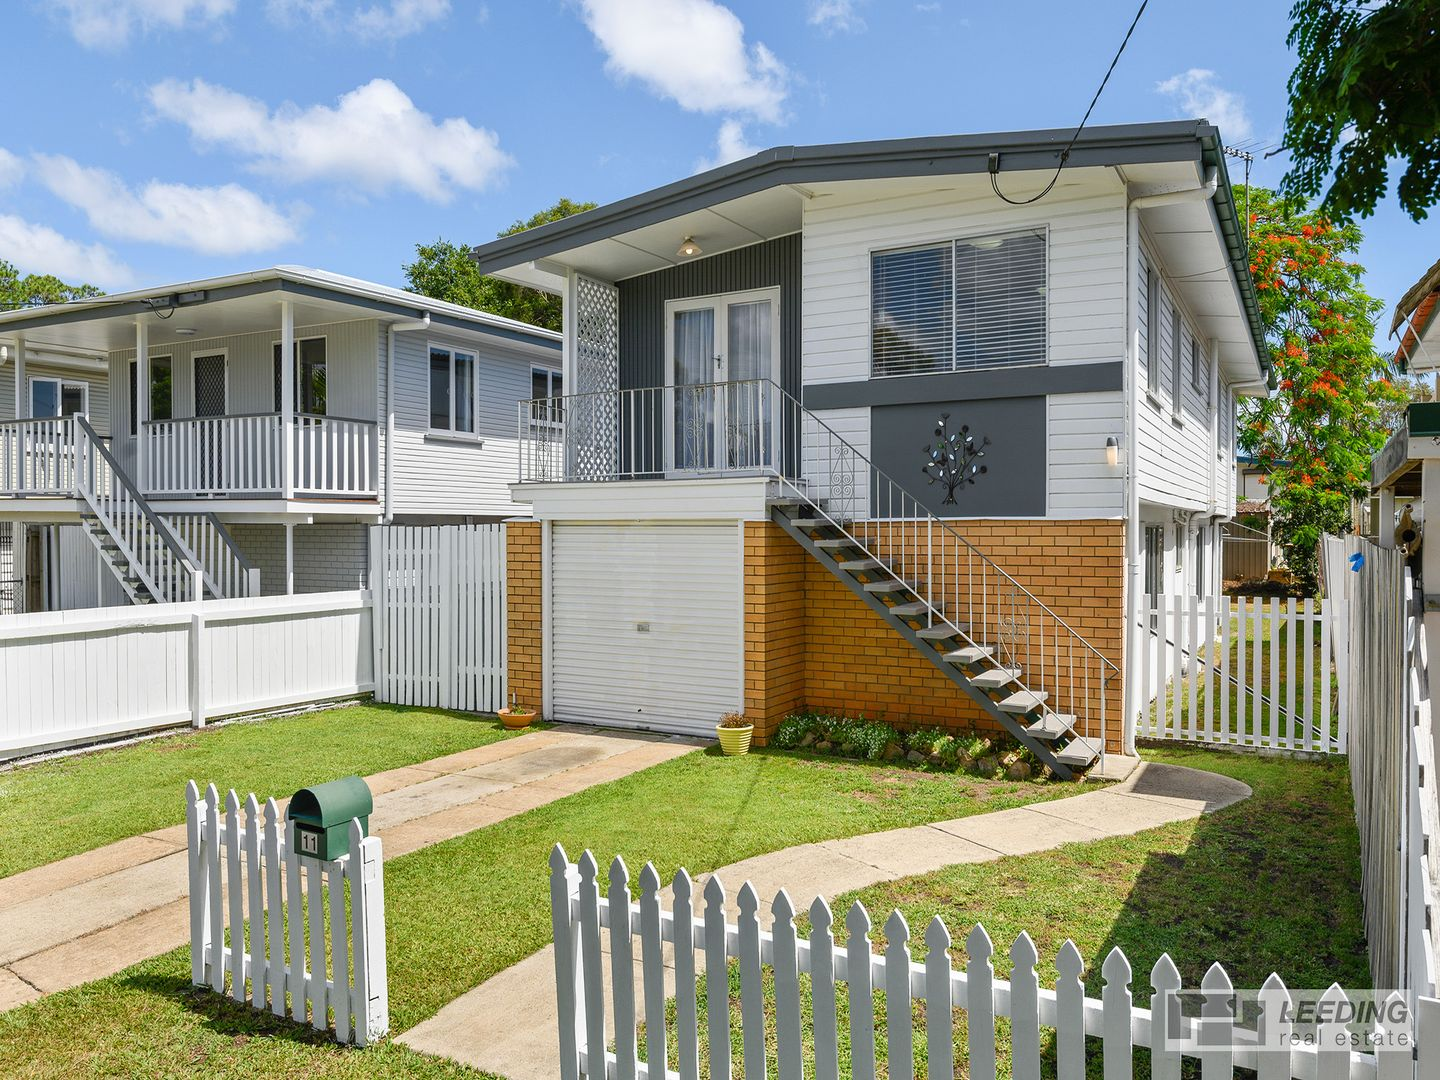 11 Gillies Street, Zillmere QLD 4034, Image 0